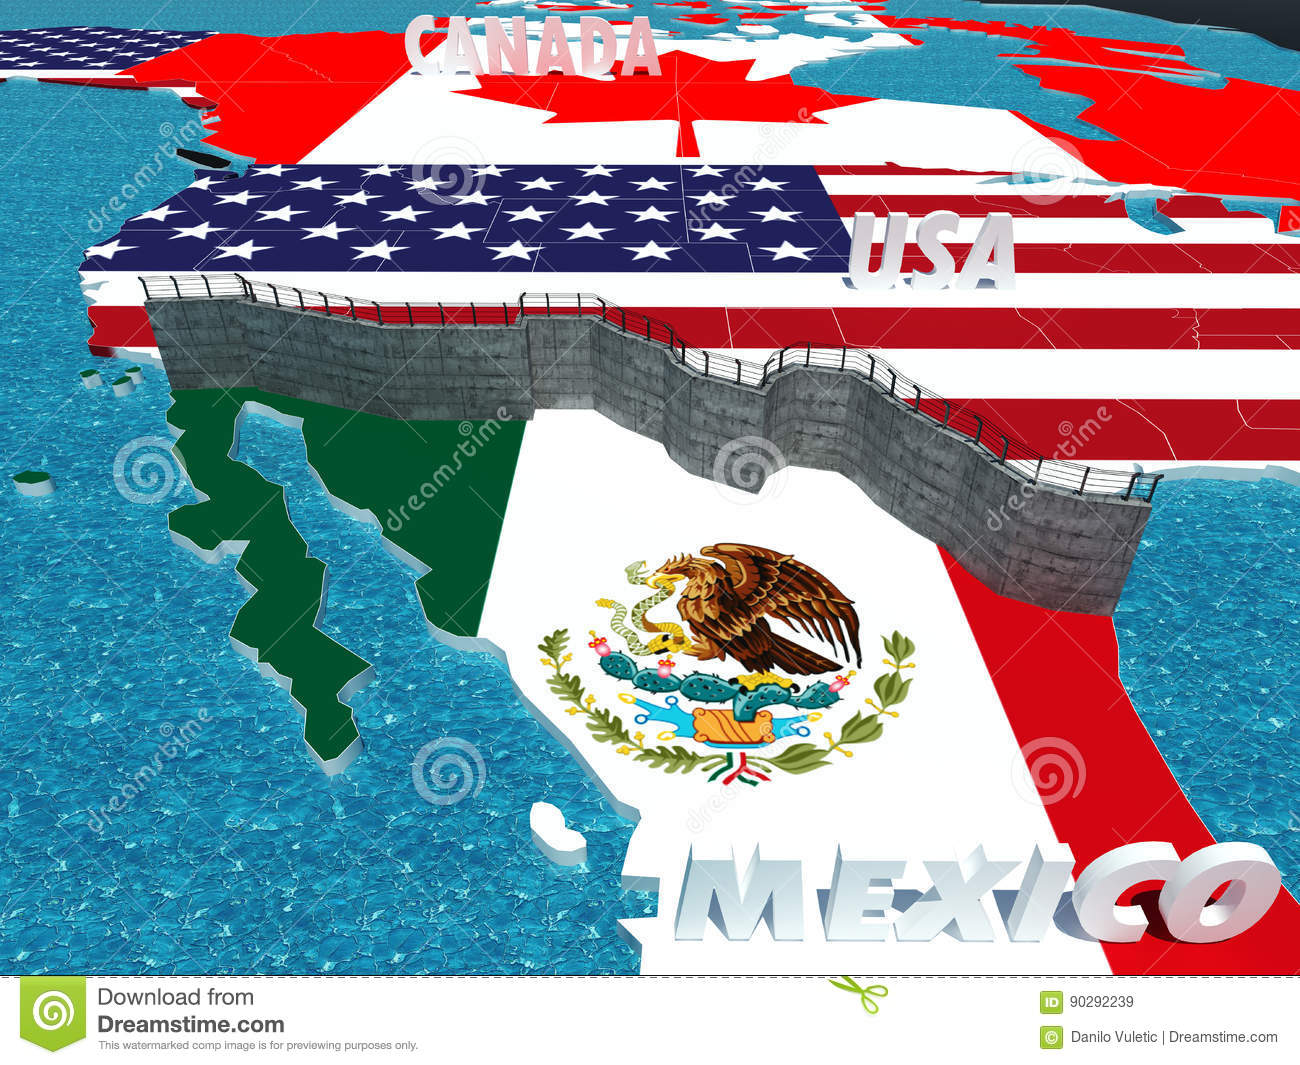 Border wall between Mexico and United States metahpor